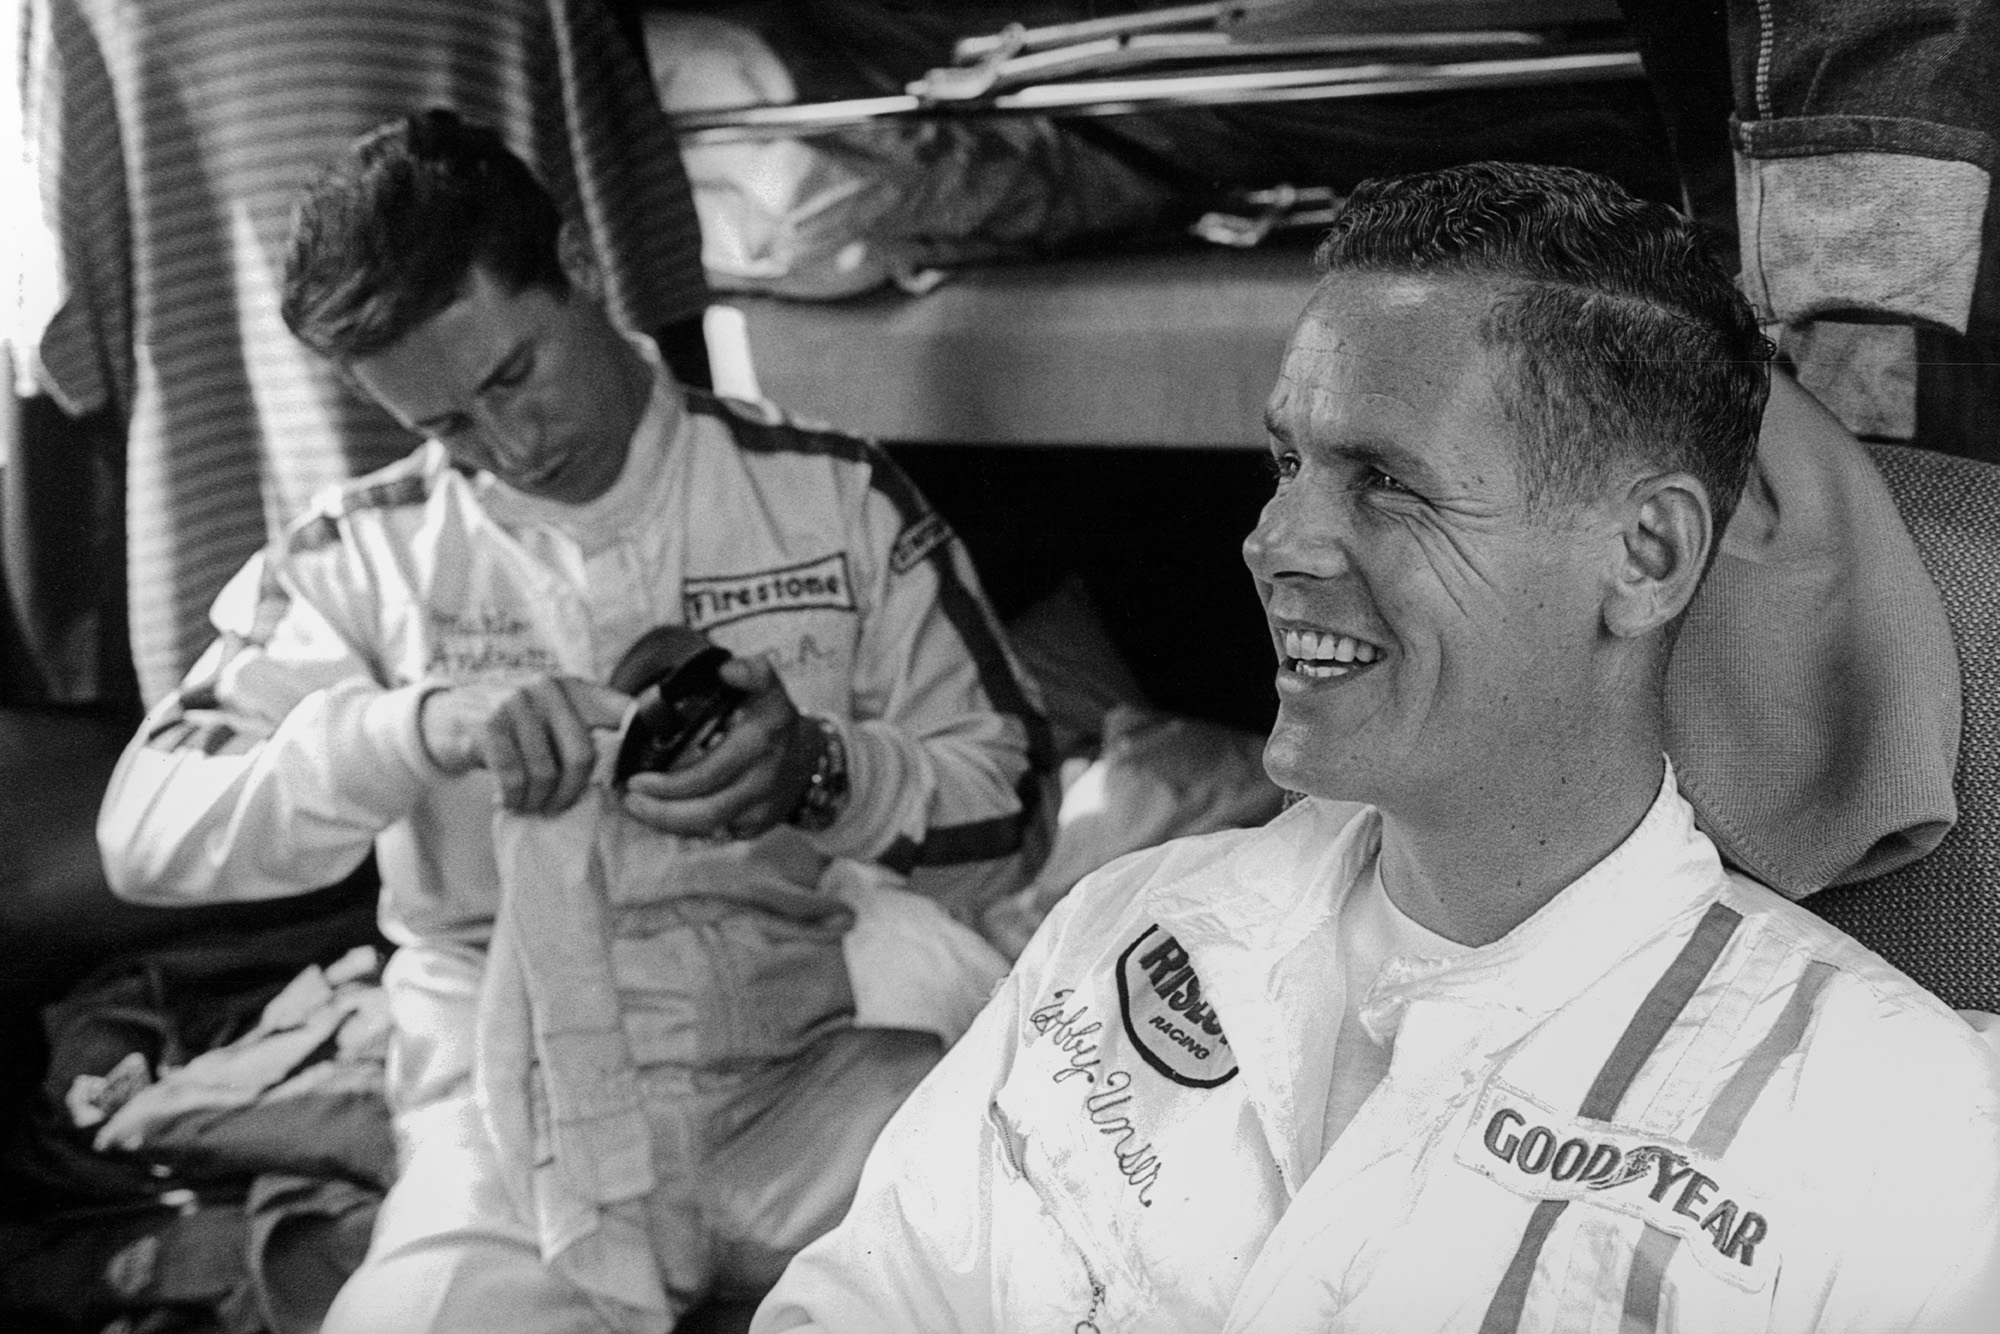 Mario Andretti and Bobby Unser at Monza in 1968